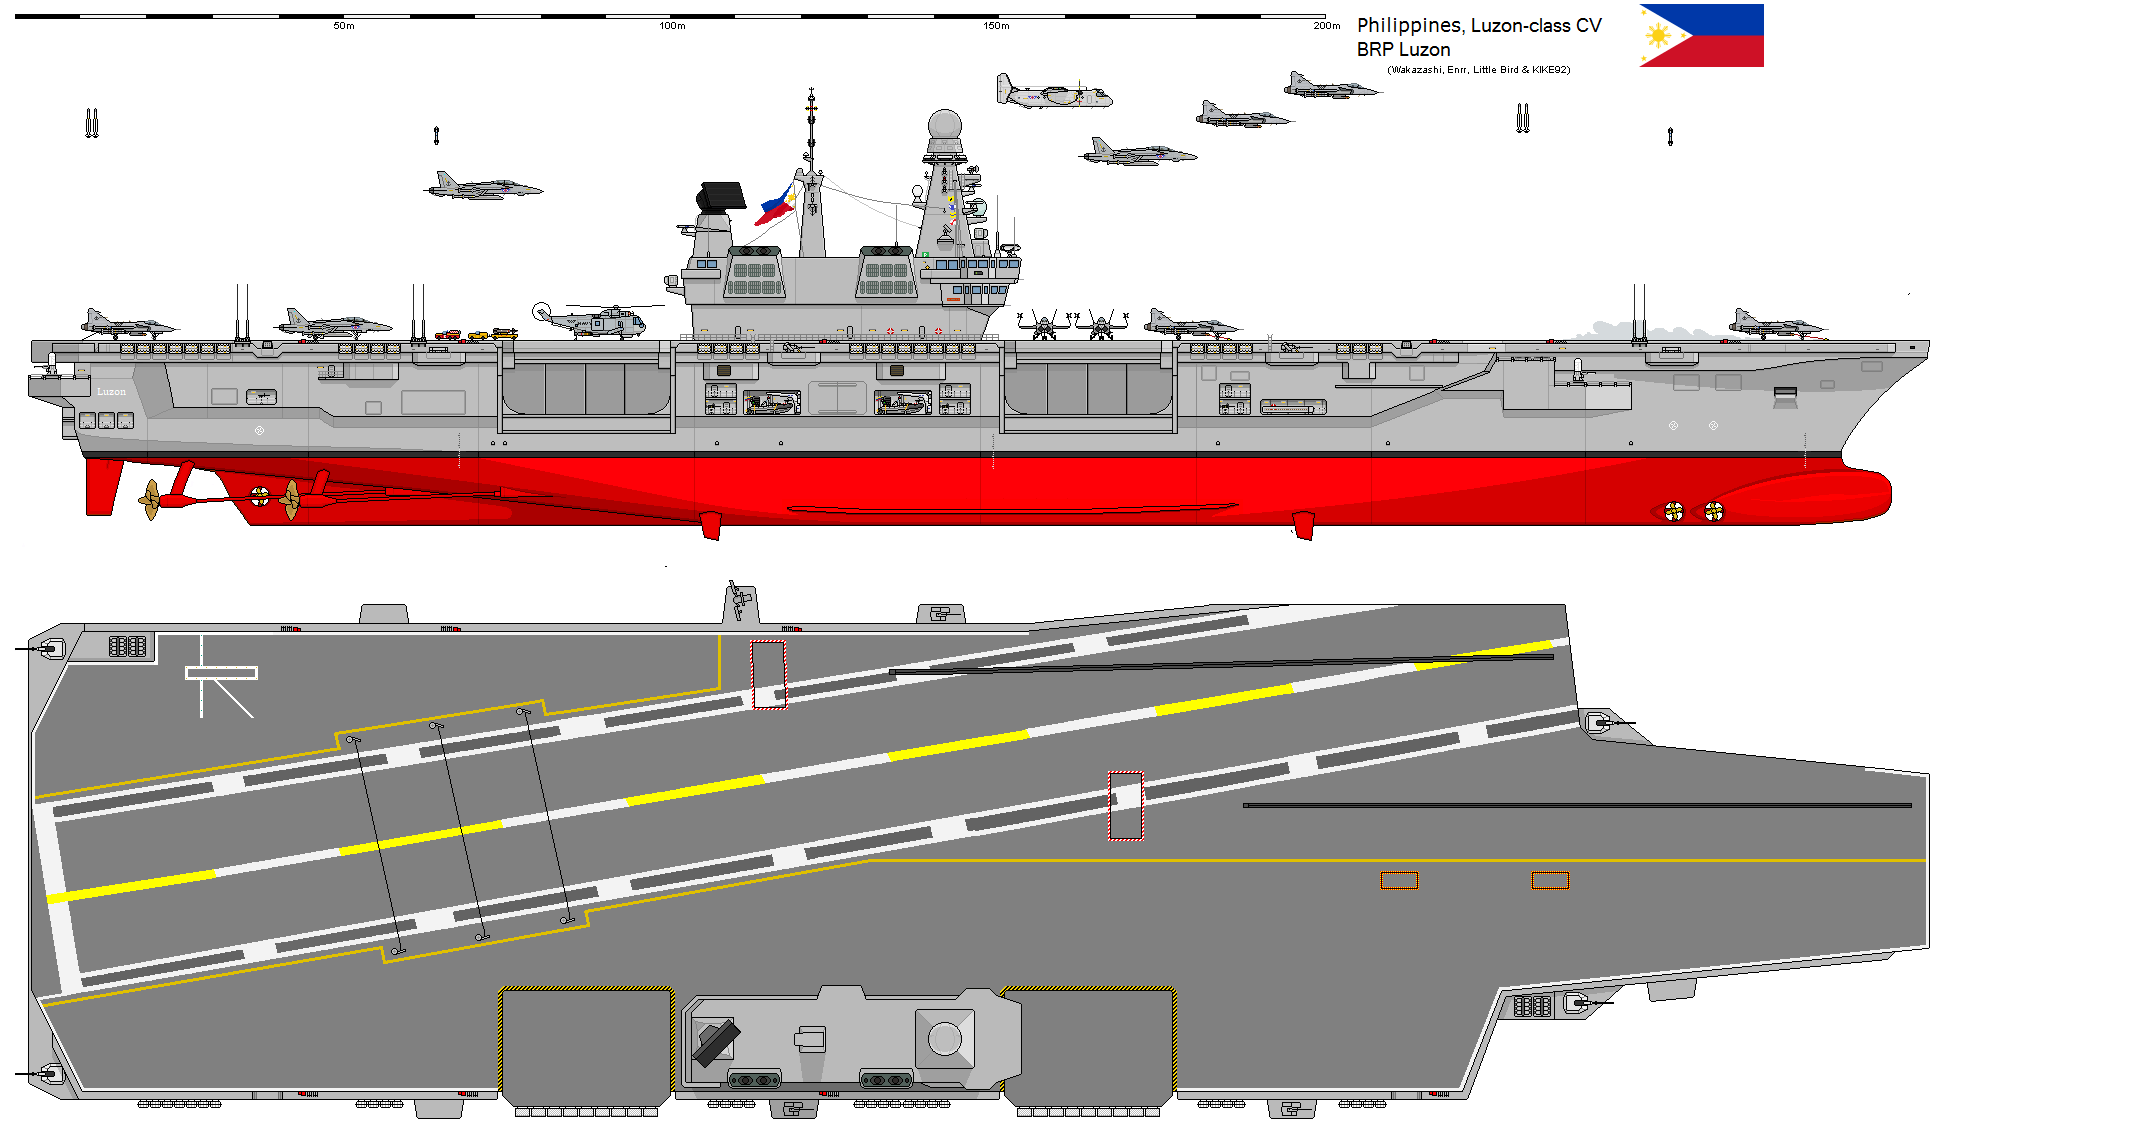 Philippines Luzon Class Cv By Pjackaugusto On Deviantart Aircraft Carrier Aircraft Design Army Vehicles